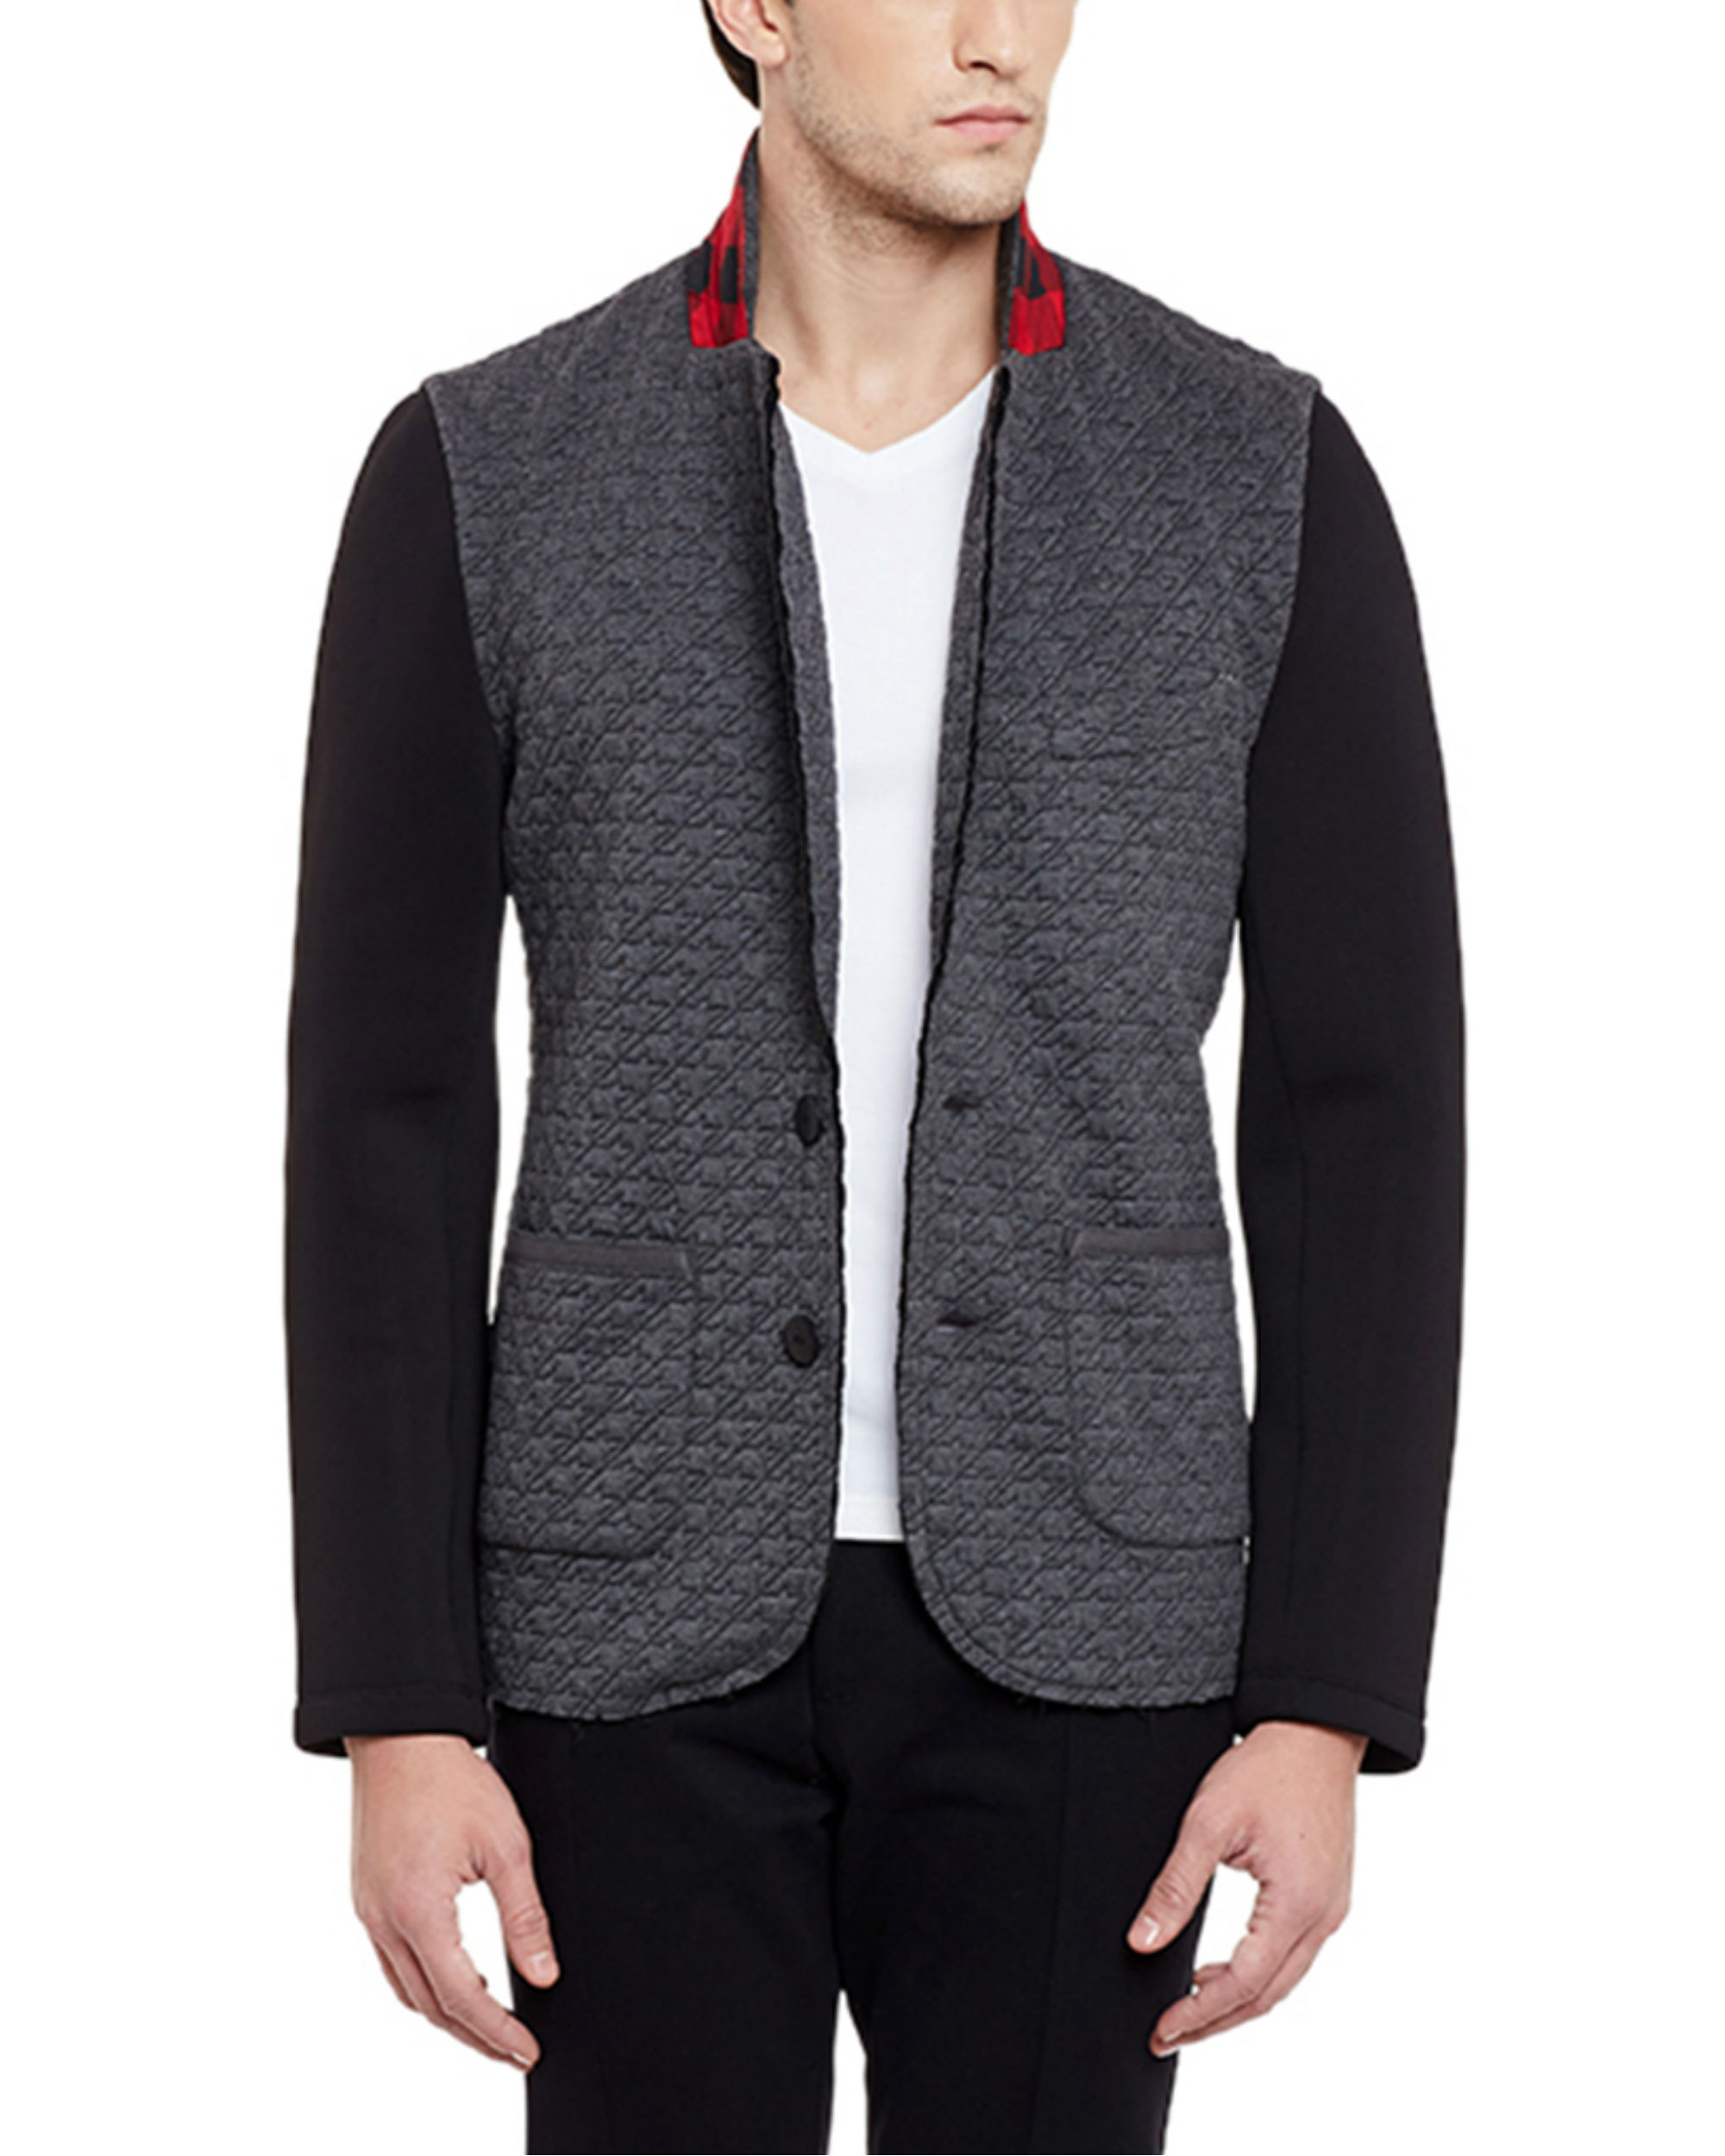 Grey unlined summer blazer